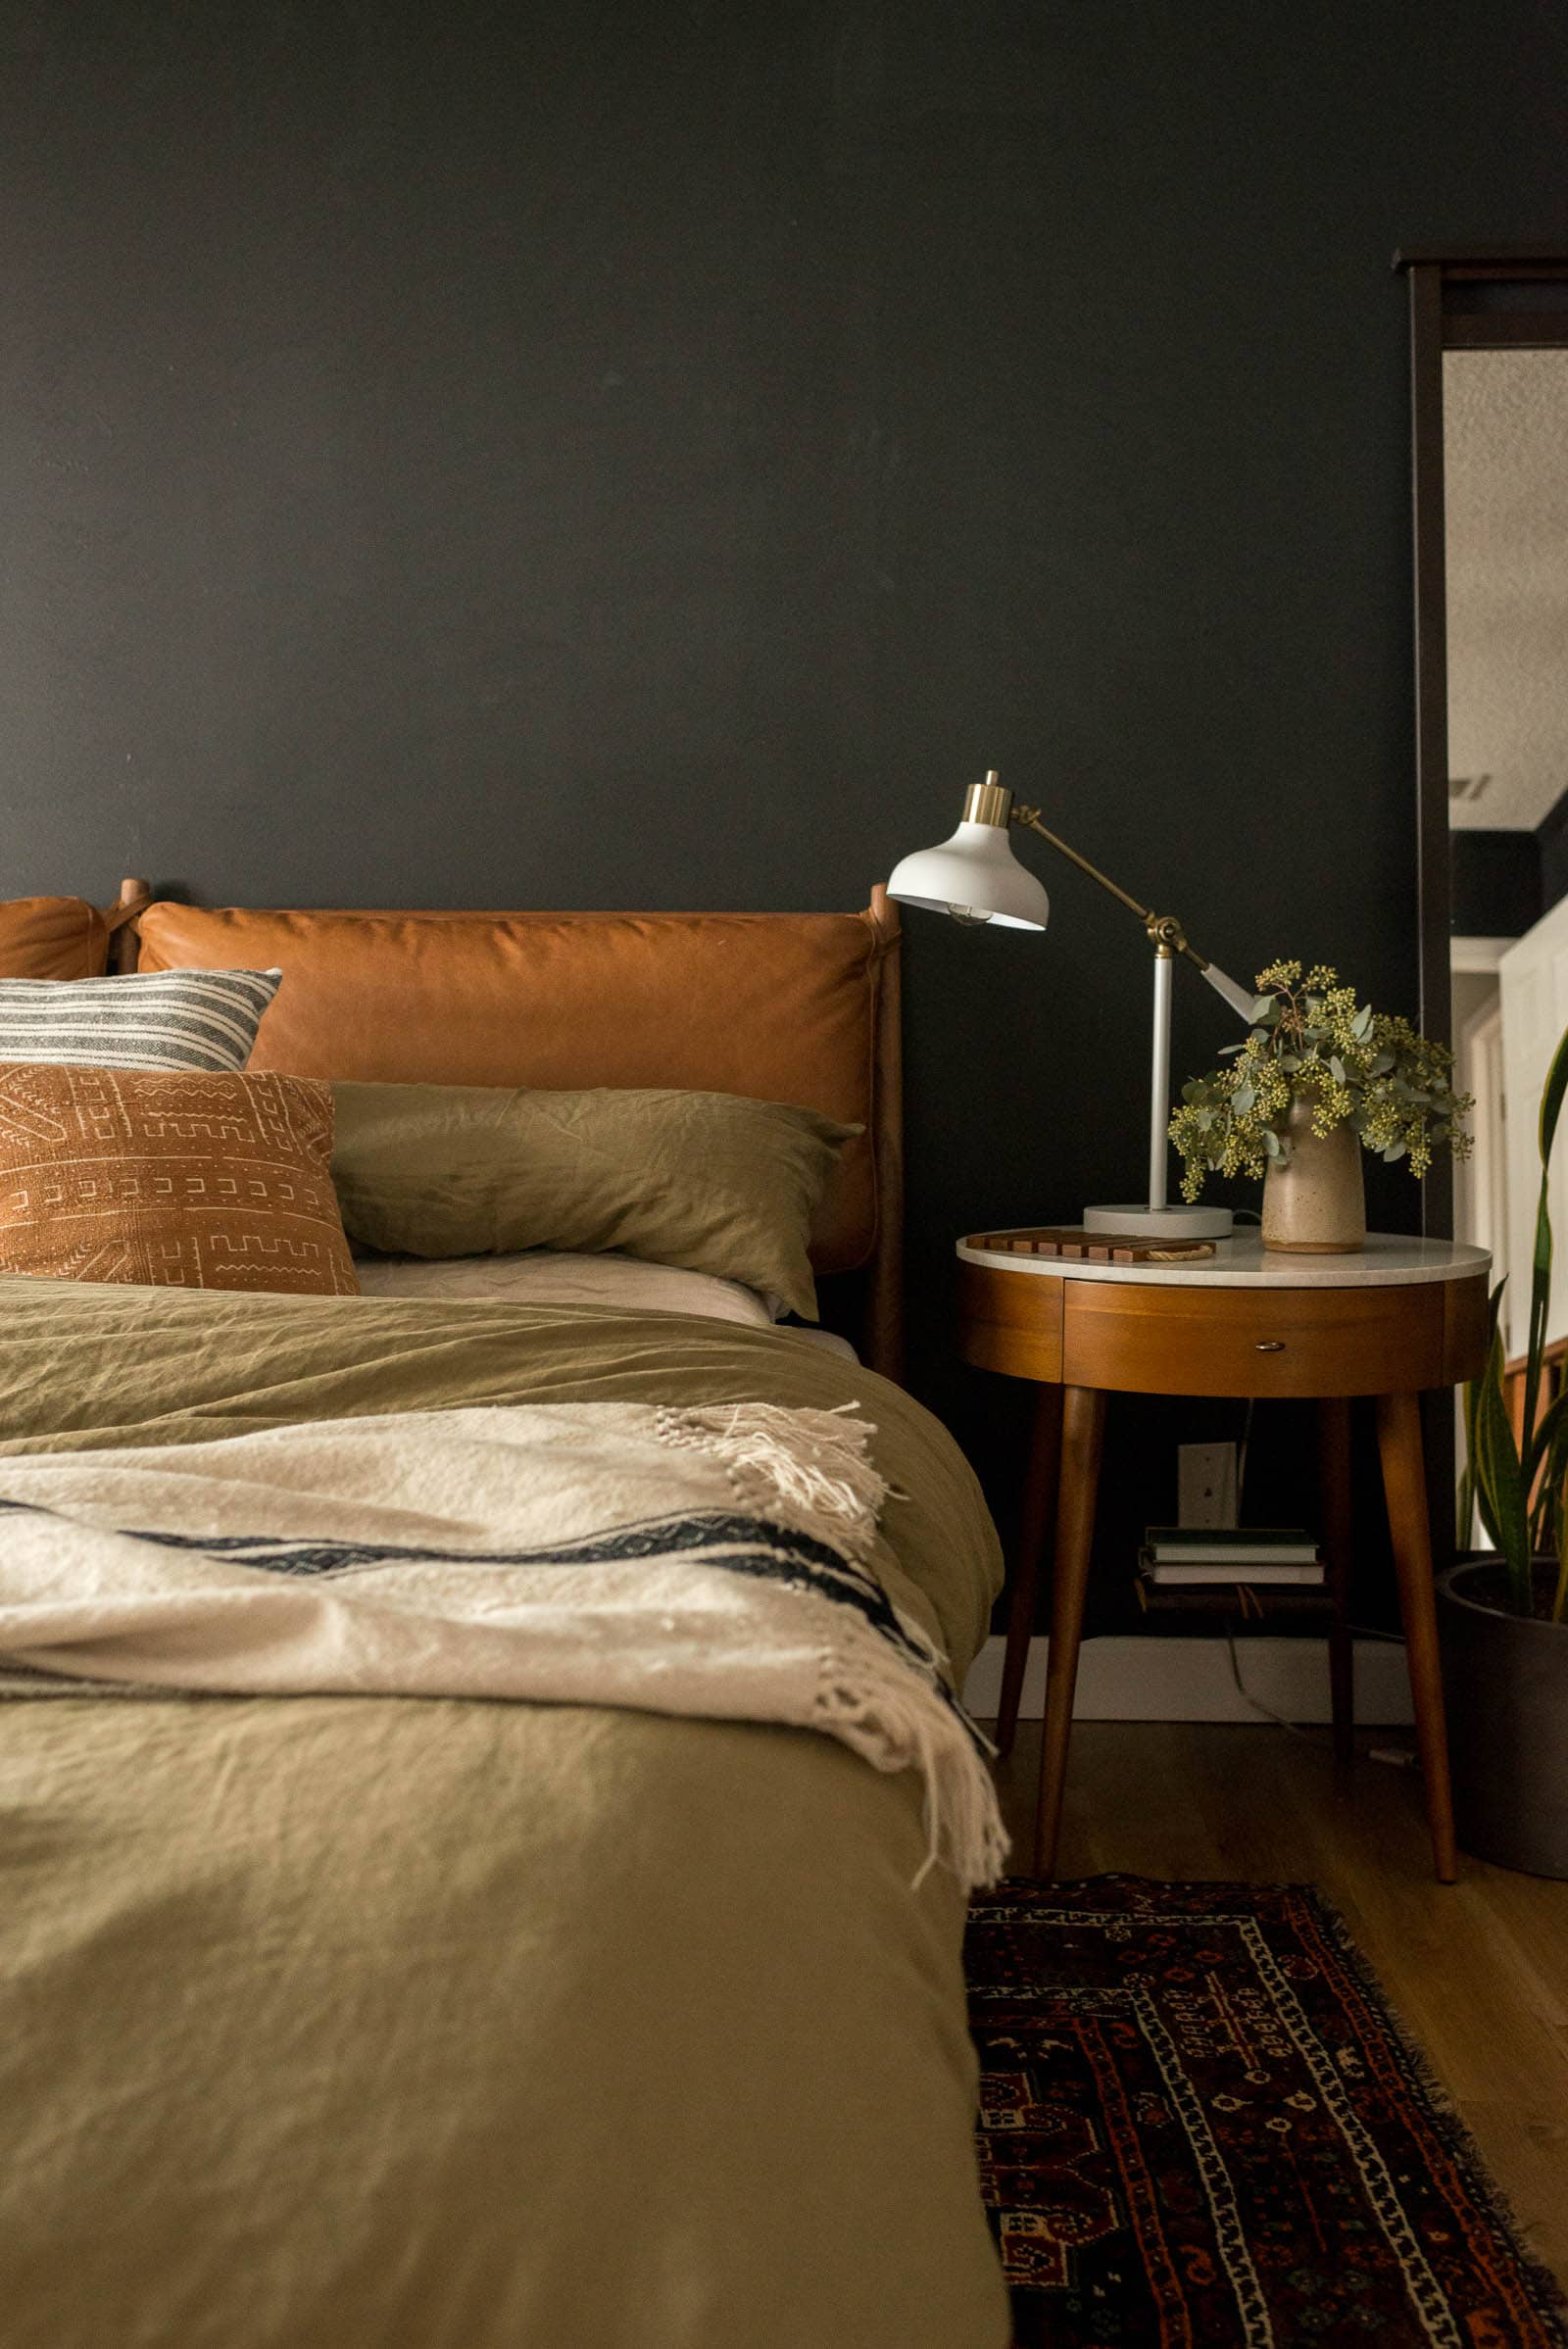 West elm bed and nightstands